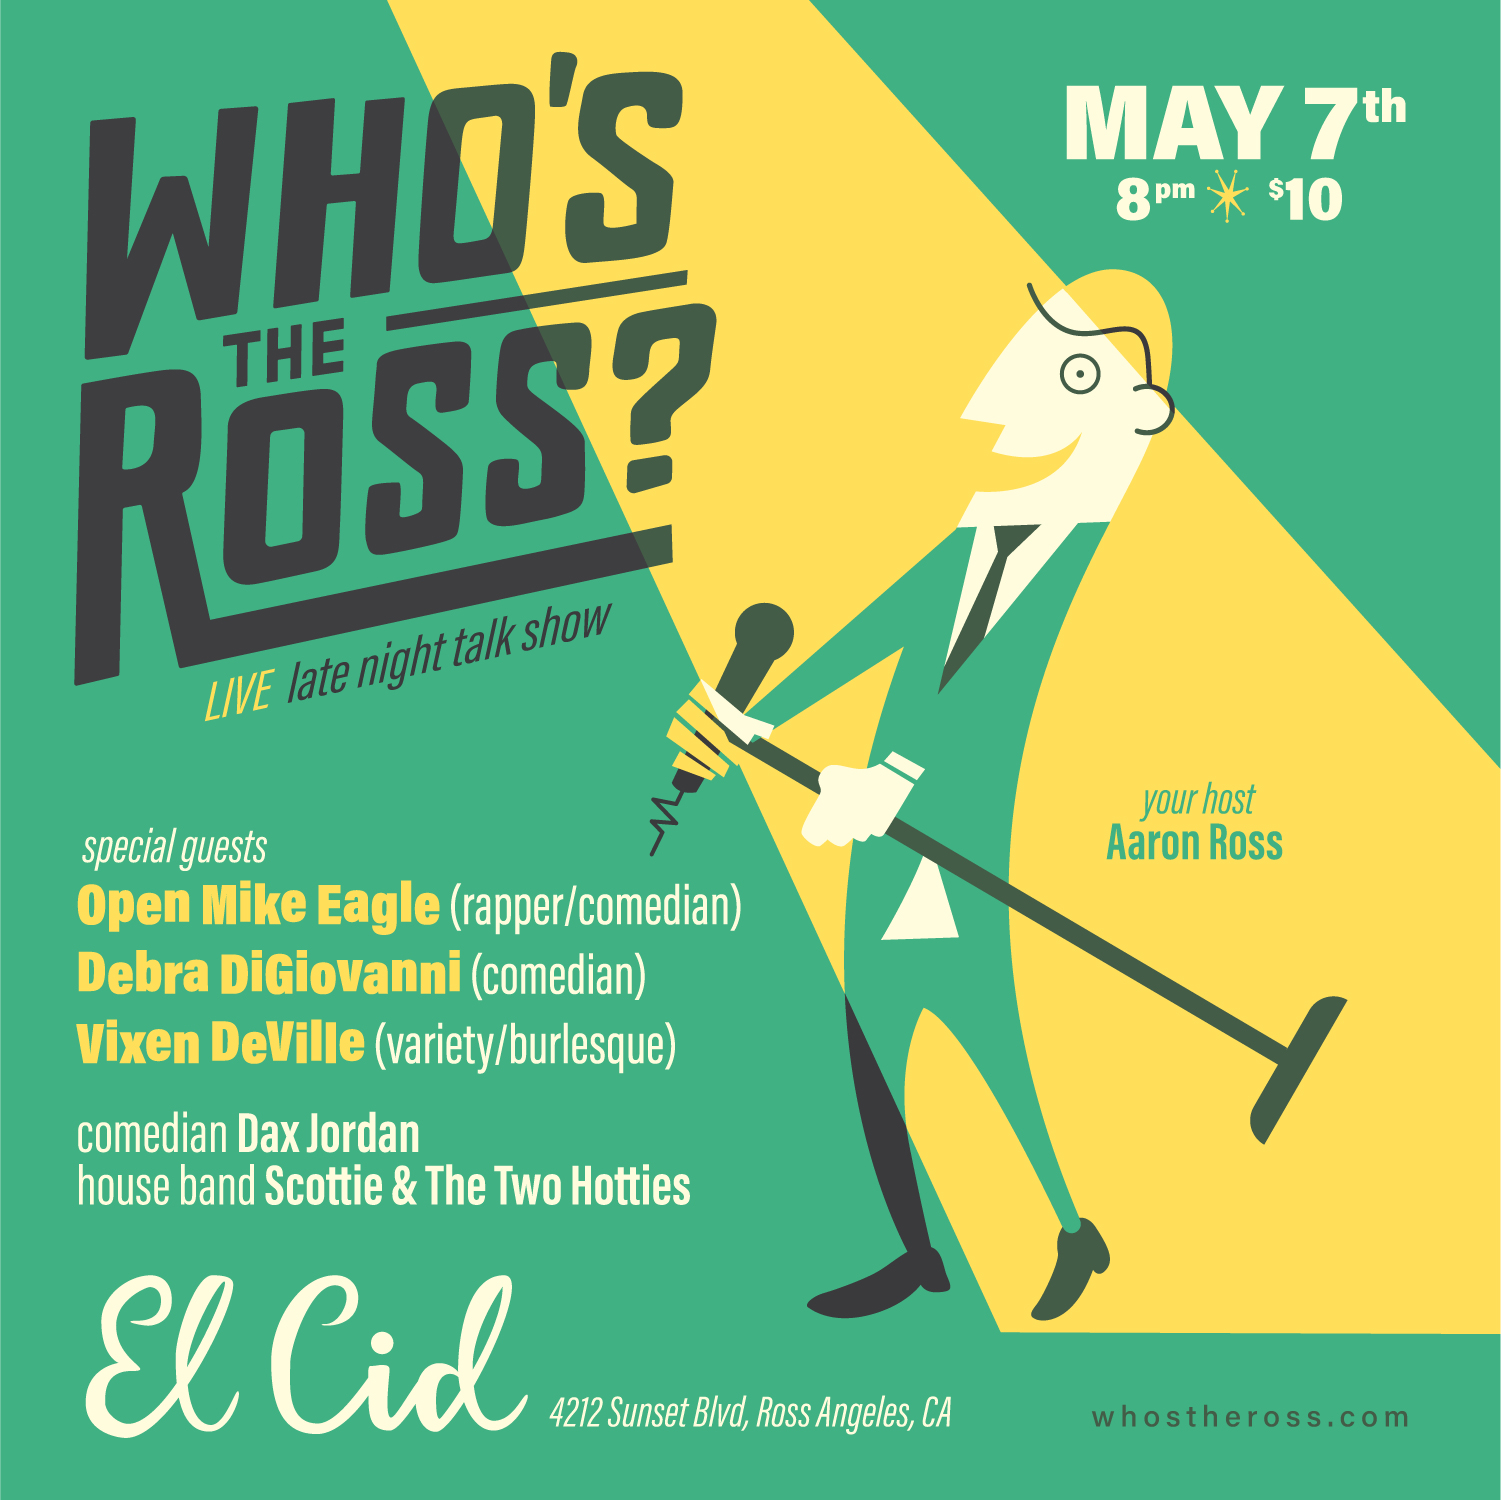 """Who's the Ross?"" whos the ross Aaron El Cid comedy LA Los Angeles Hollywood Silver Lake funny show performance live talk show"